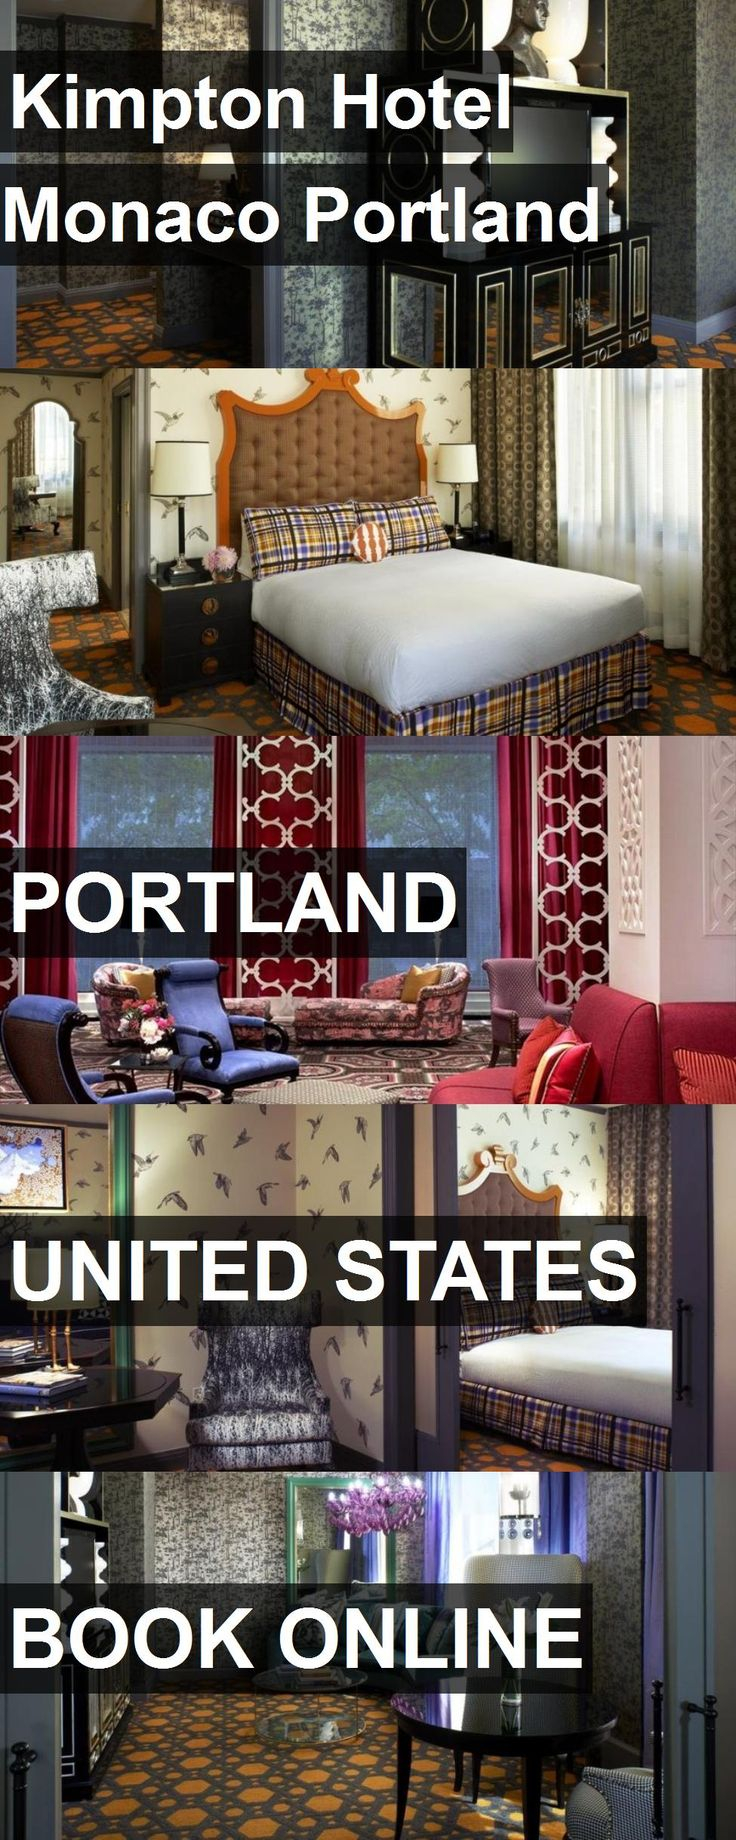 Kimpton Hotel Monaco Portland in Portland, United States. For more information, photos, reviews and best prices please follow the link. #UnitedStates #Portland #travel #vacation #hotel